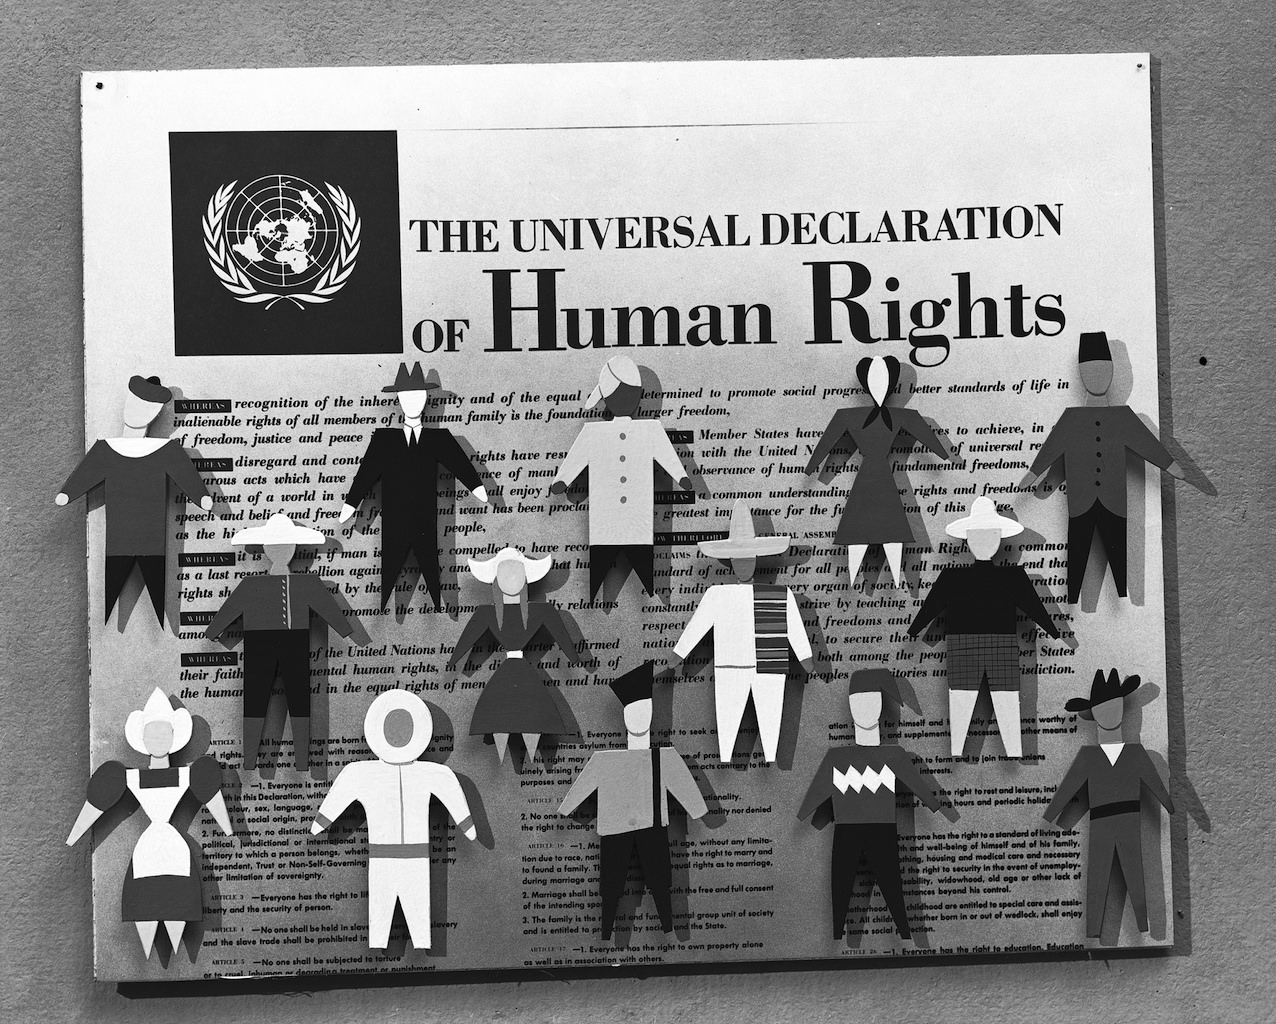 human rights still not upheld in Basic human rights include the right to be heard—better still, some rights, like legal rights, mean being able to take action to recover any lost rights or even seek compensation legitimate client complaints also provide valuable feedback to the service, so that services and staff can improve.